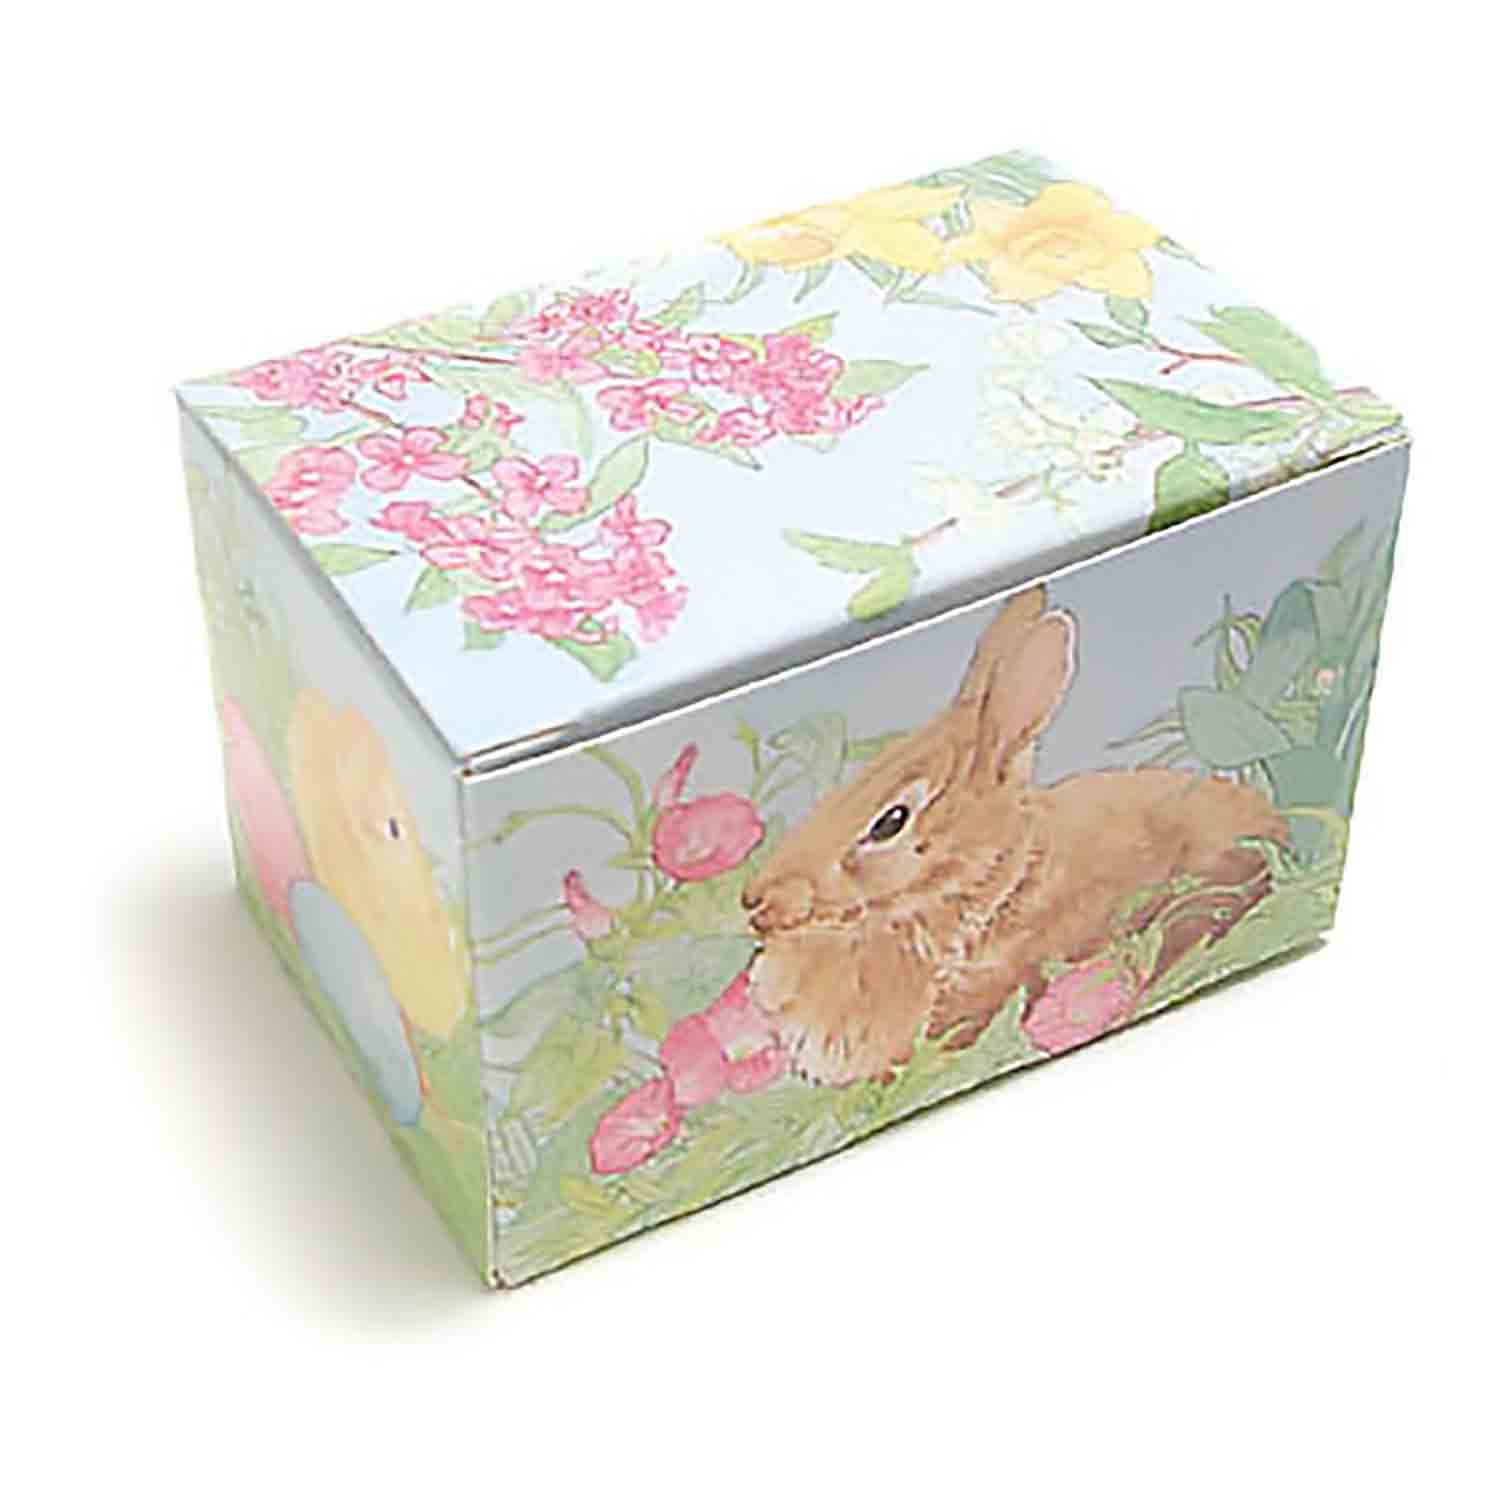 1 lb. Easter Garden Egg Candy Box